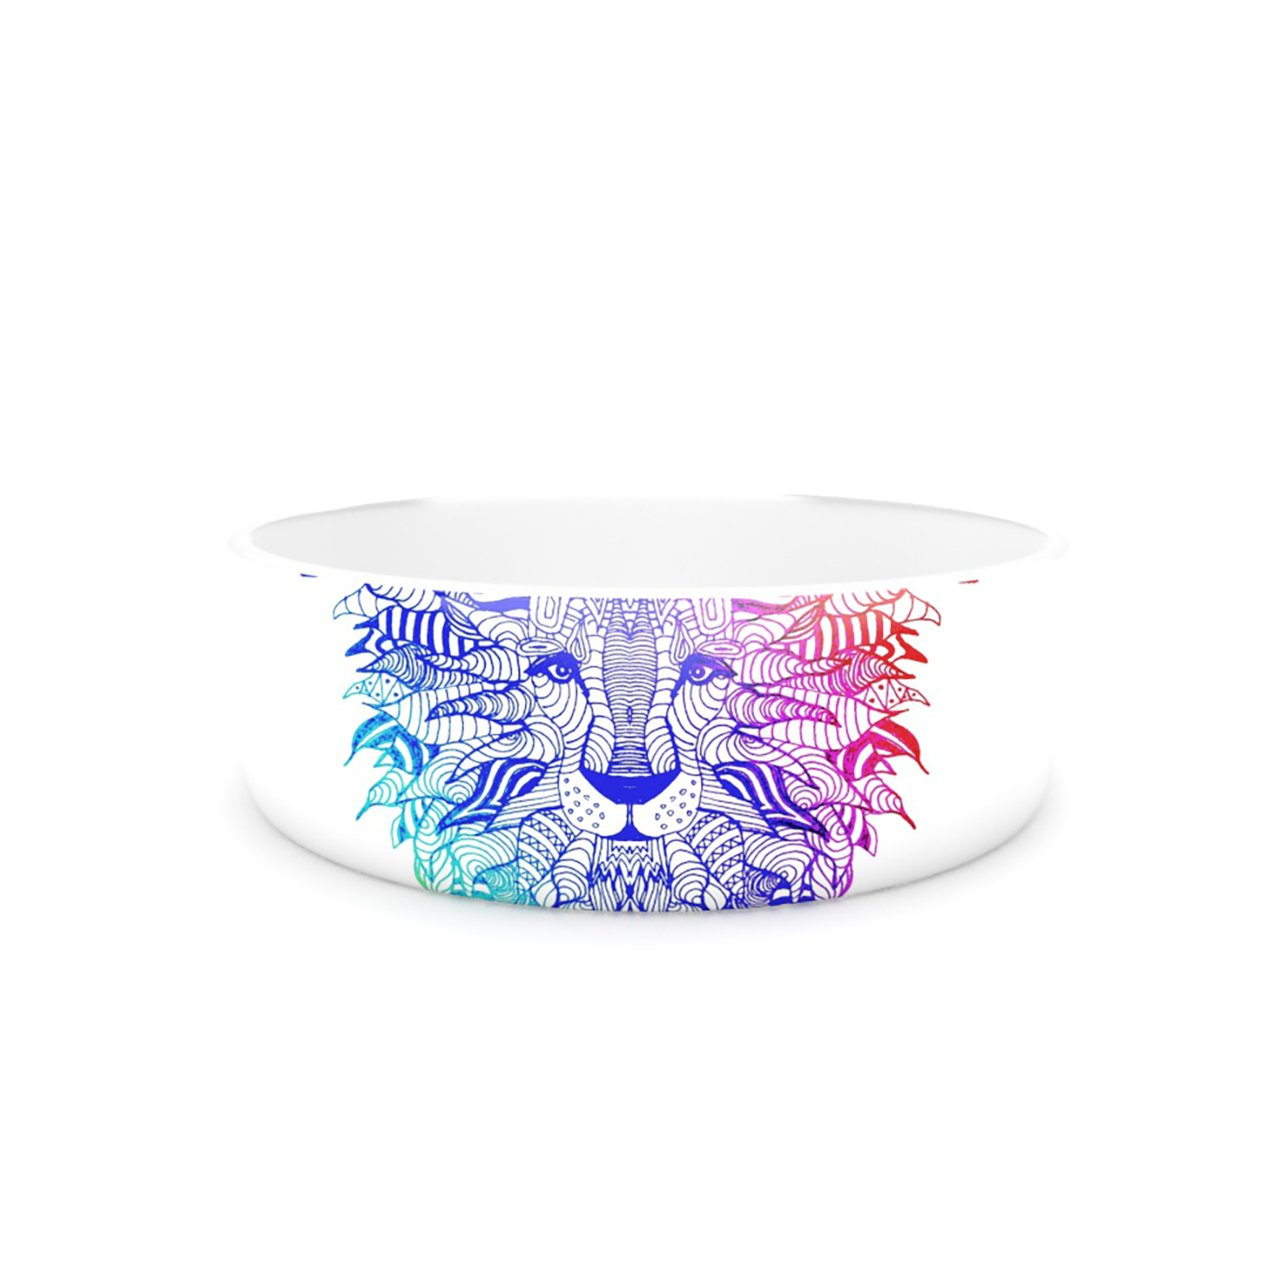 Kess InHouse Monika Strigel Rainbow Lion  Pet Bowl, 7-Inch